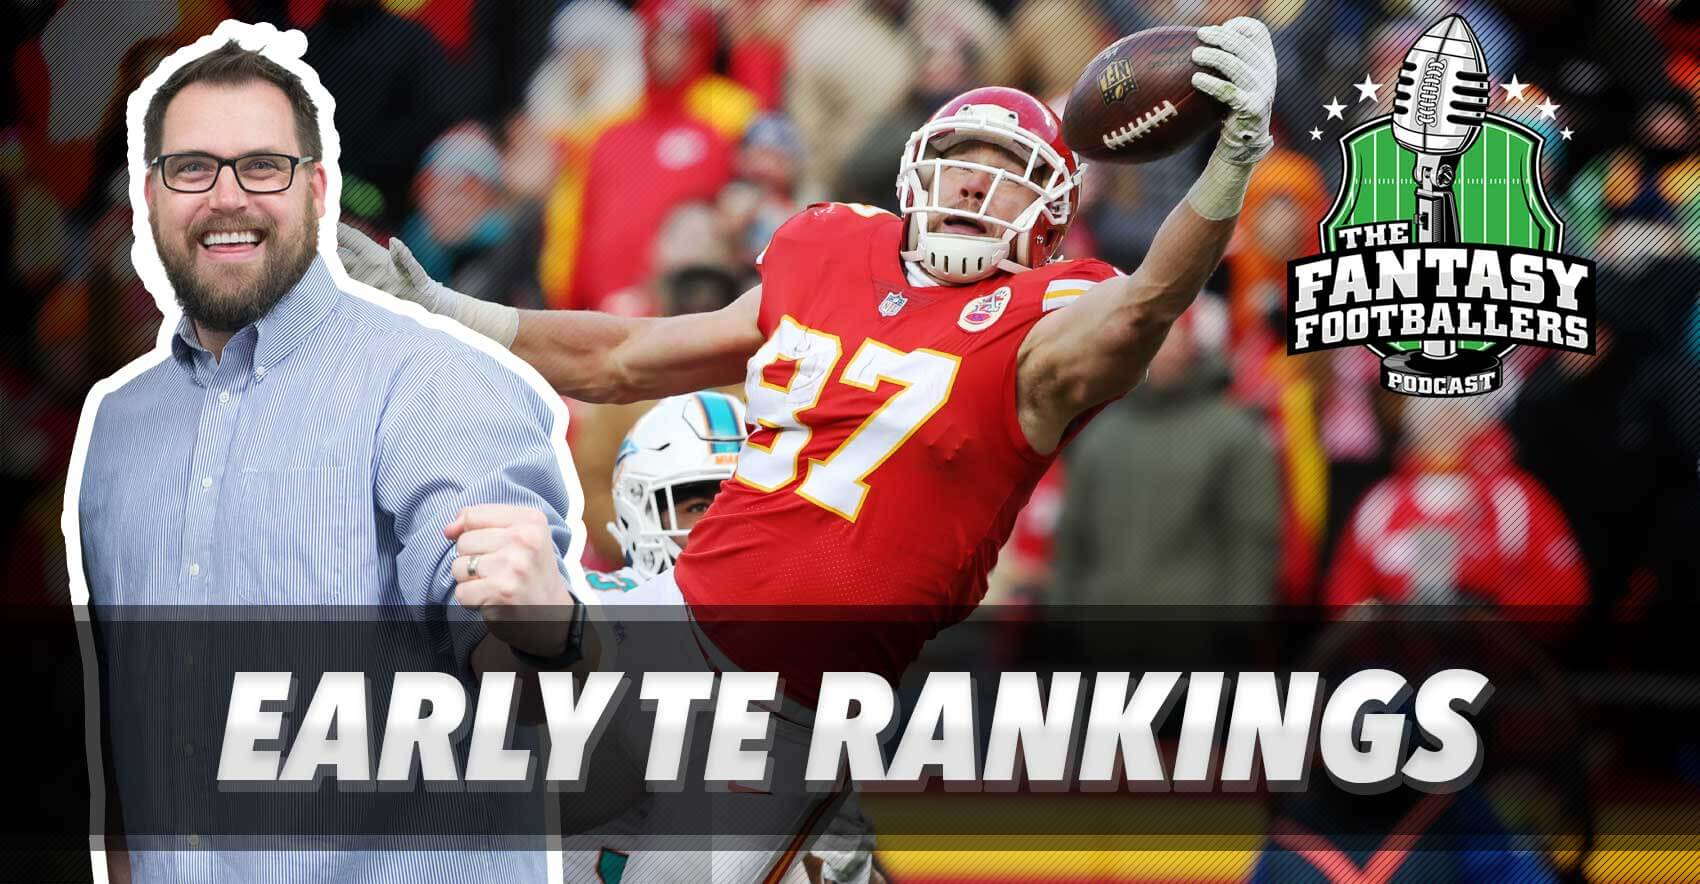 Early TE Rankings - Ep. #540